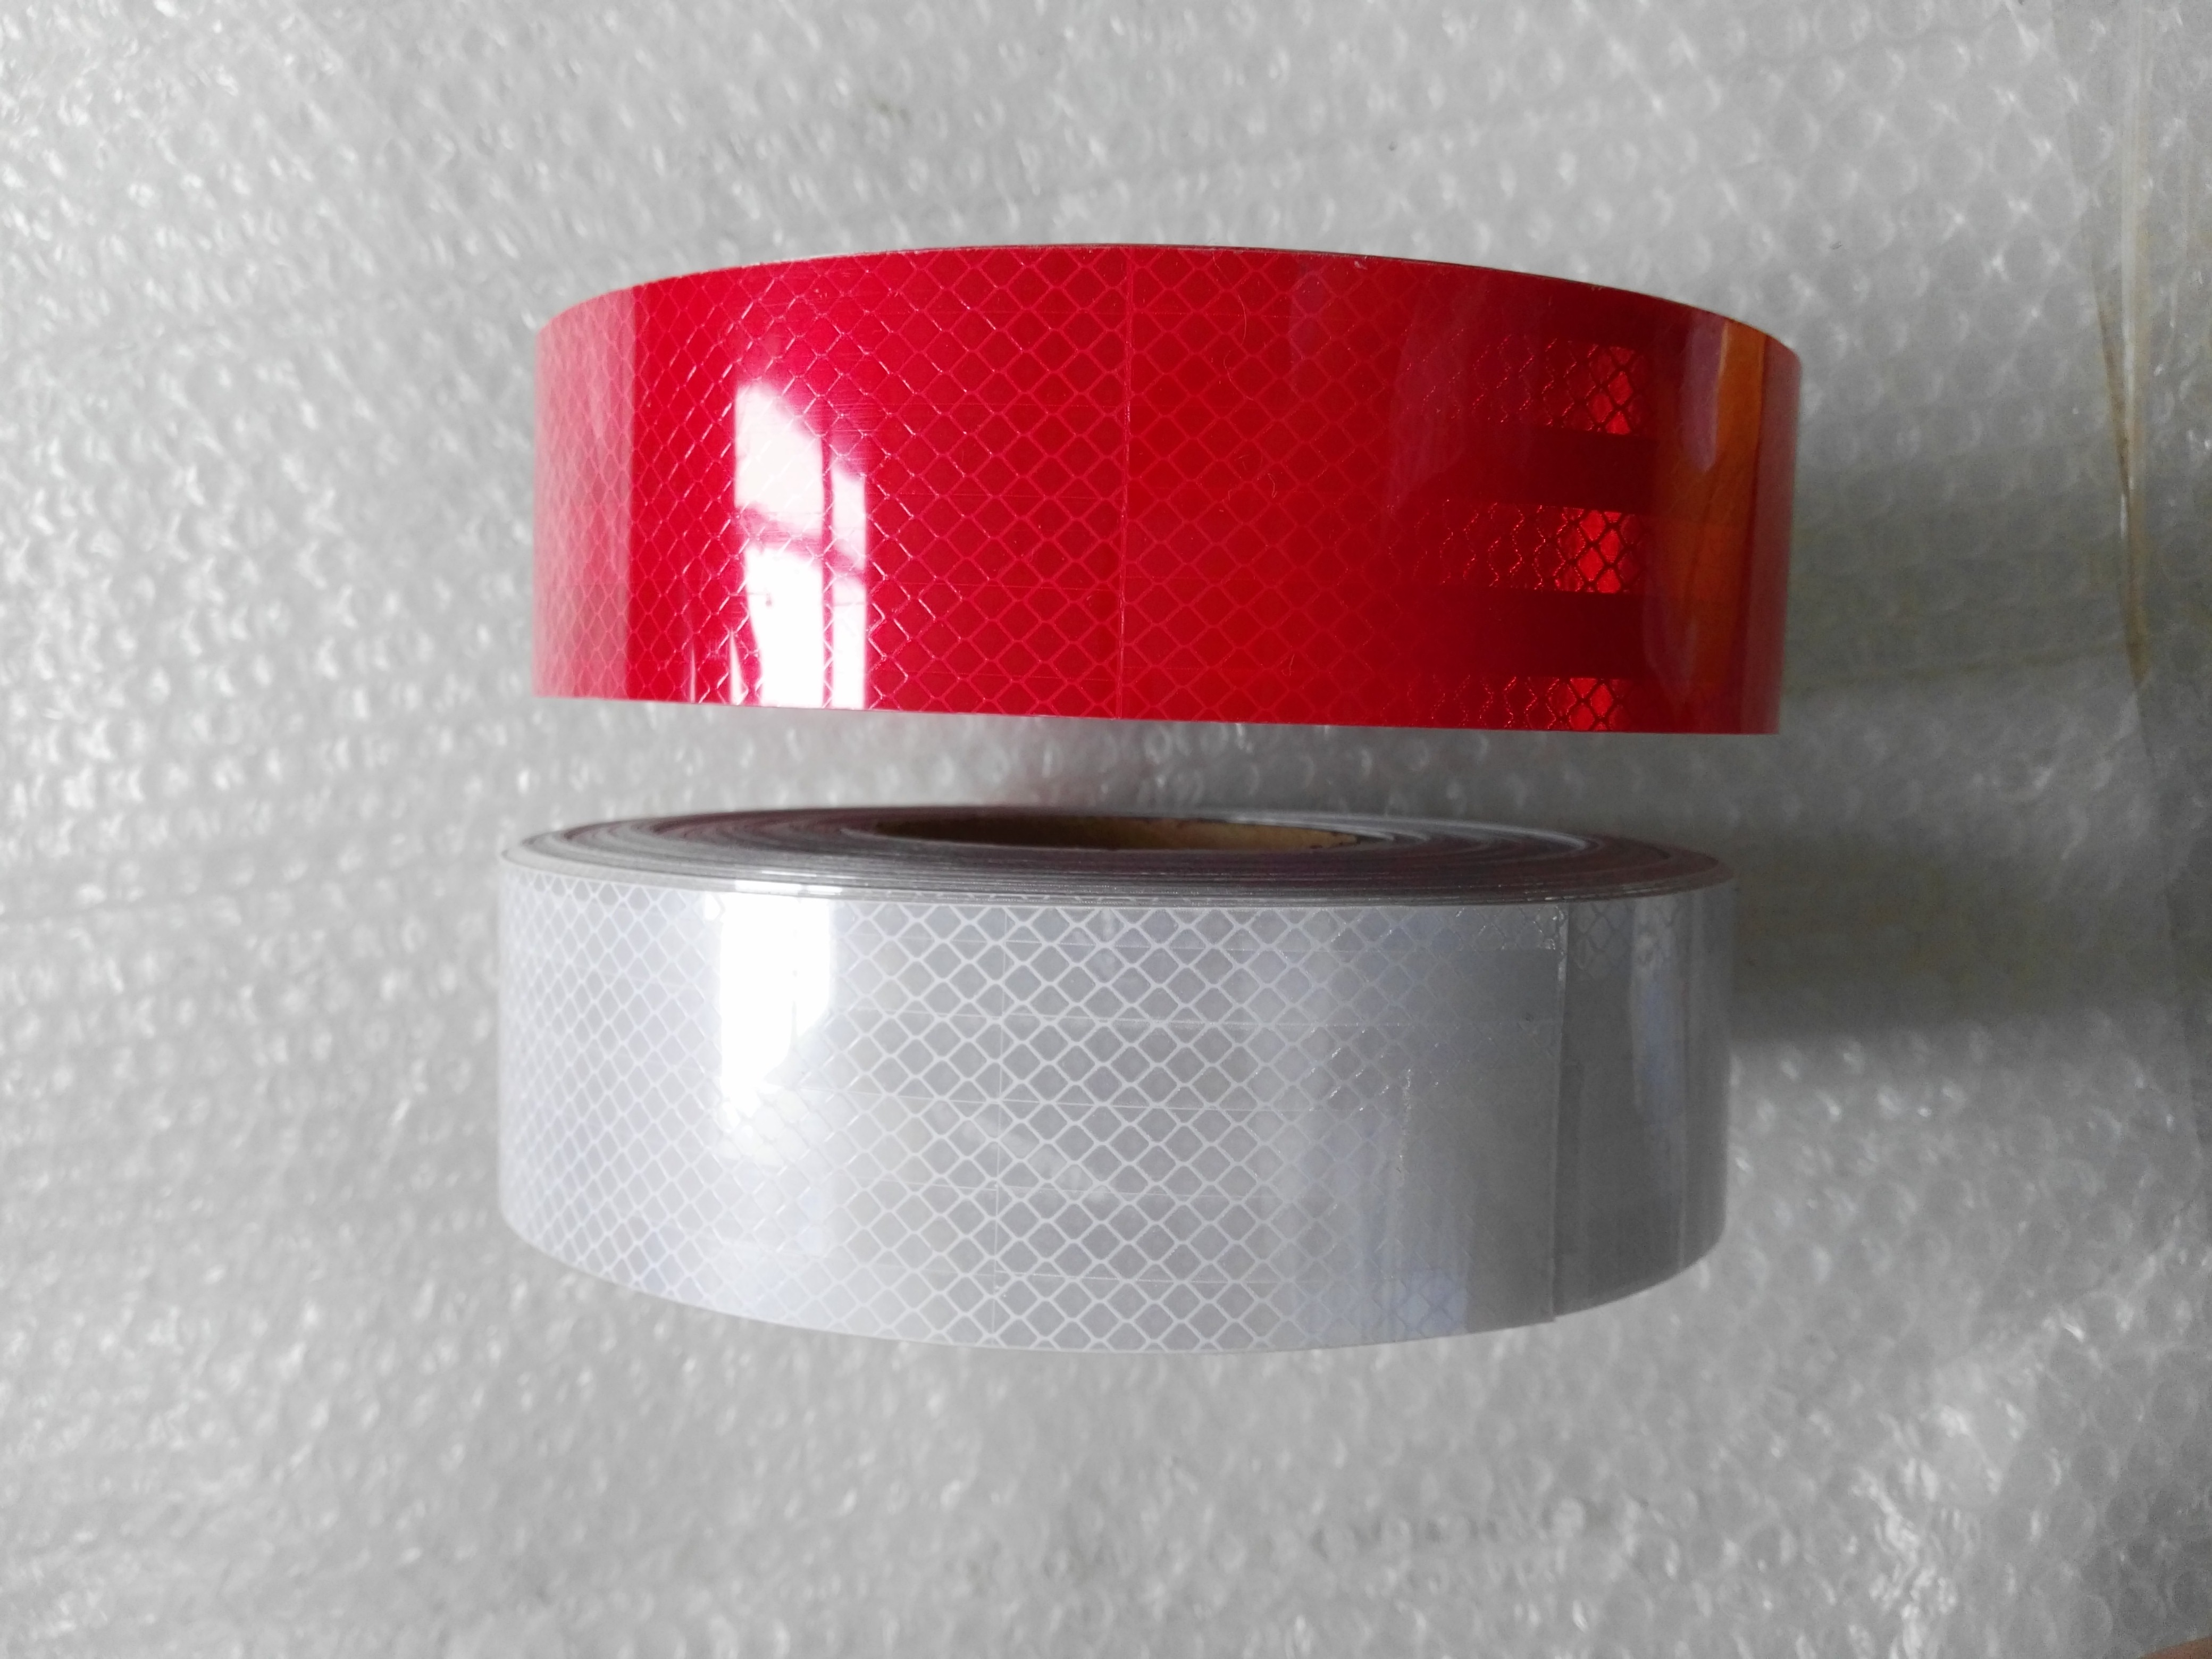 HC-O-3012 REFLECTIVE TAPE FOR BUS